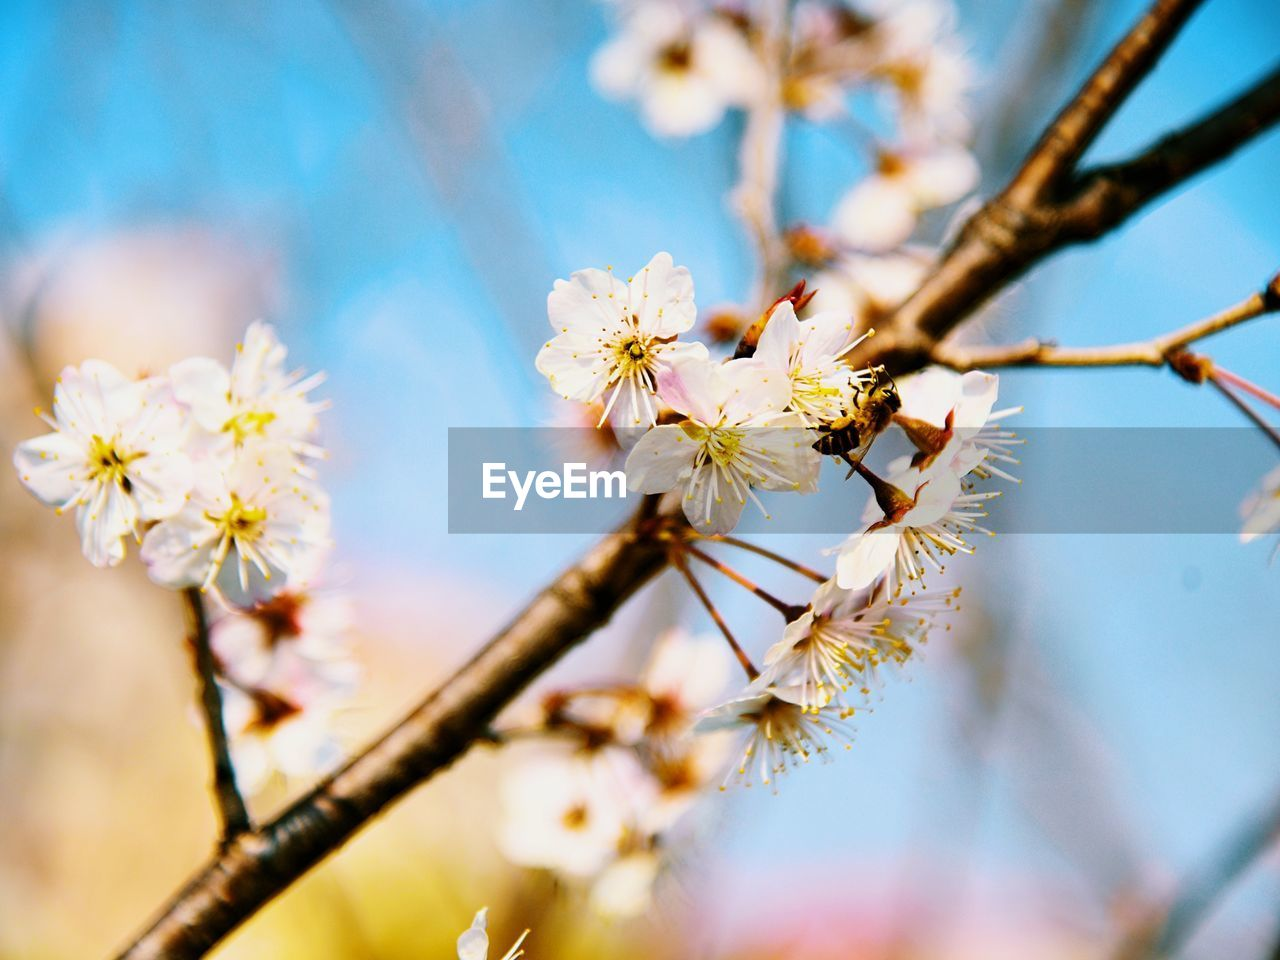 flower, flowering plant, plant, fragility, vulnerability, growth, freshness, beauty in nature, close-up, tree, selective focus, branch, nature, springtime, petal, twig, no people, blossom, flower head, inflorescence, pollen, cherry blossom, outdoors, cherry tree, spring